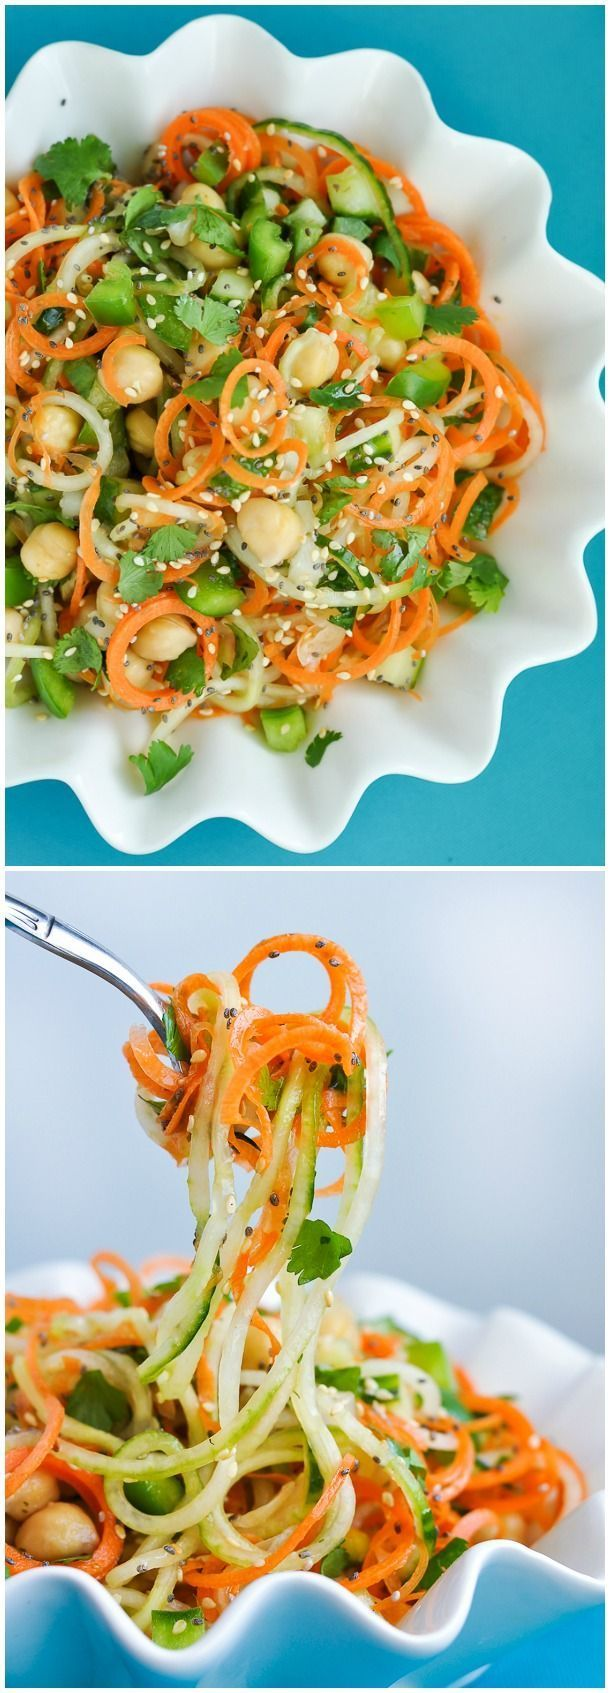 Healthy Spiralized Sweet + Sour Thai Cucumber Salad with Carrots, Chickpeas & Cilantro :: You'll flip over this flavorful salad!